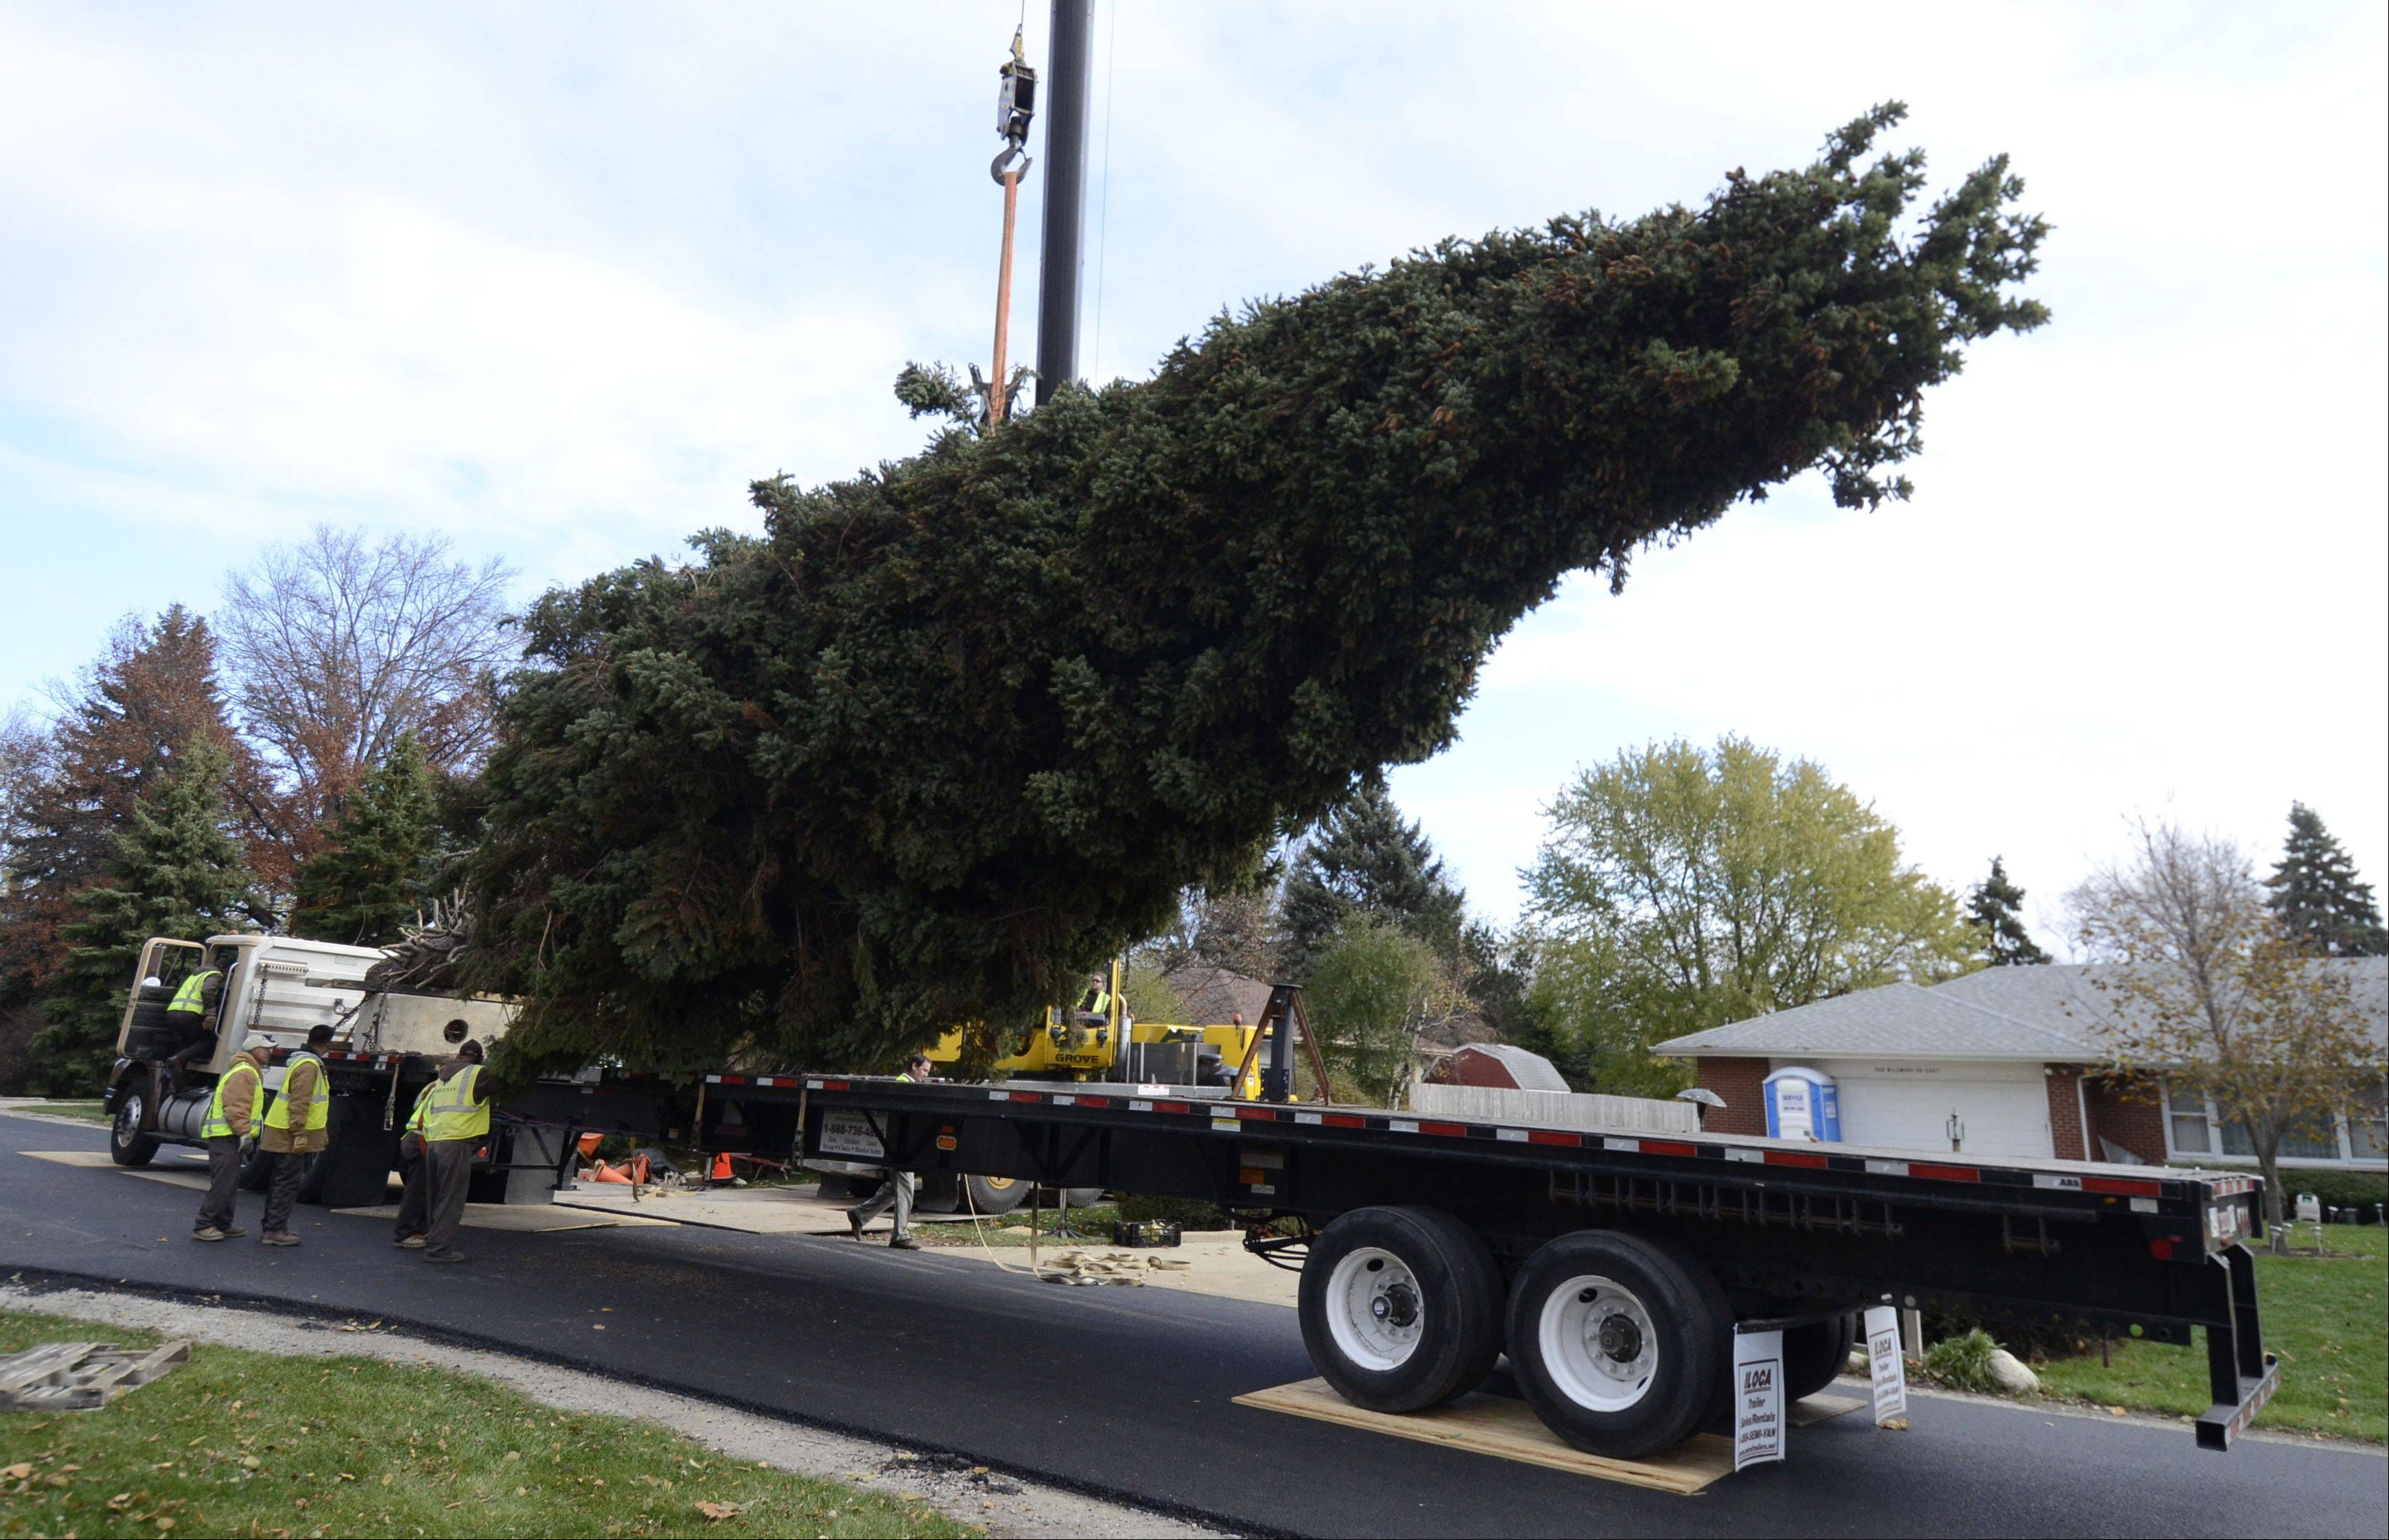 A 64-foot tall Colorado spruce tree is loaded on a flatbed trailer Thursday morning at the Prospect Heights home of Barbara Theiszmann. The tree will be placed in Chicago's Daley Plaza for Christmas.